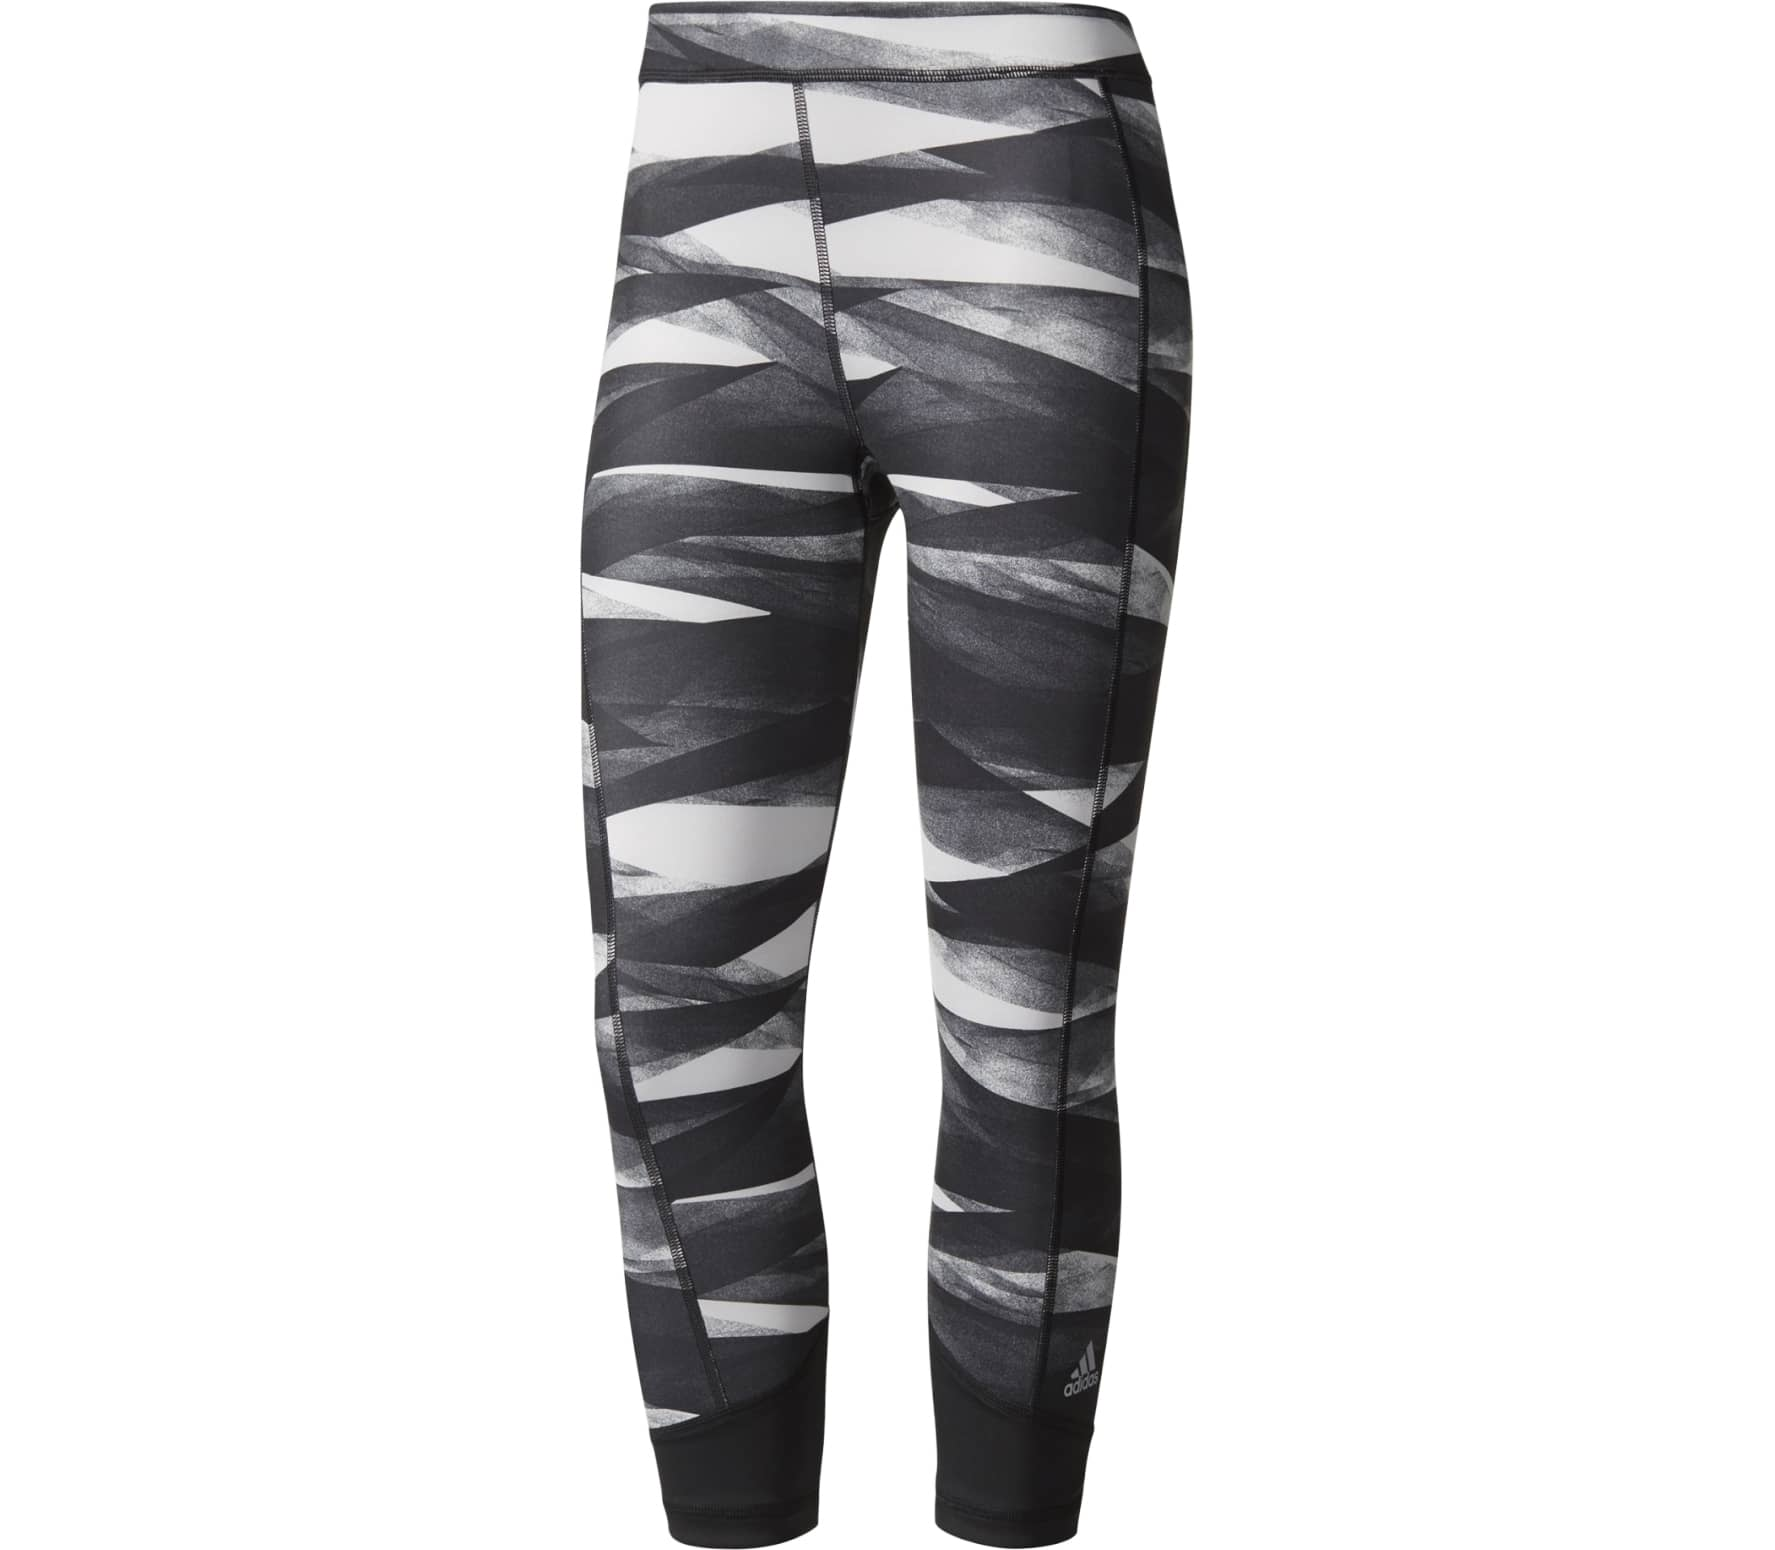 7c2a3d49c48d6 Adidas - Techfit capri pants Print women's training pants (grey ...